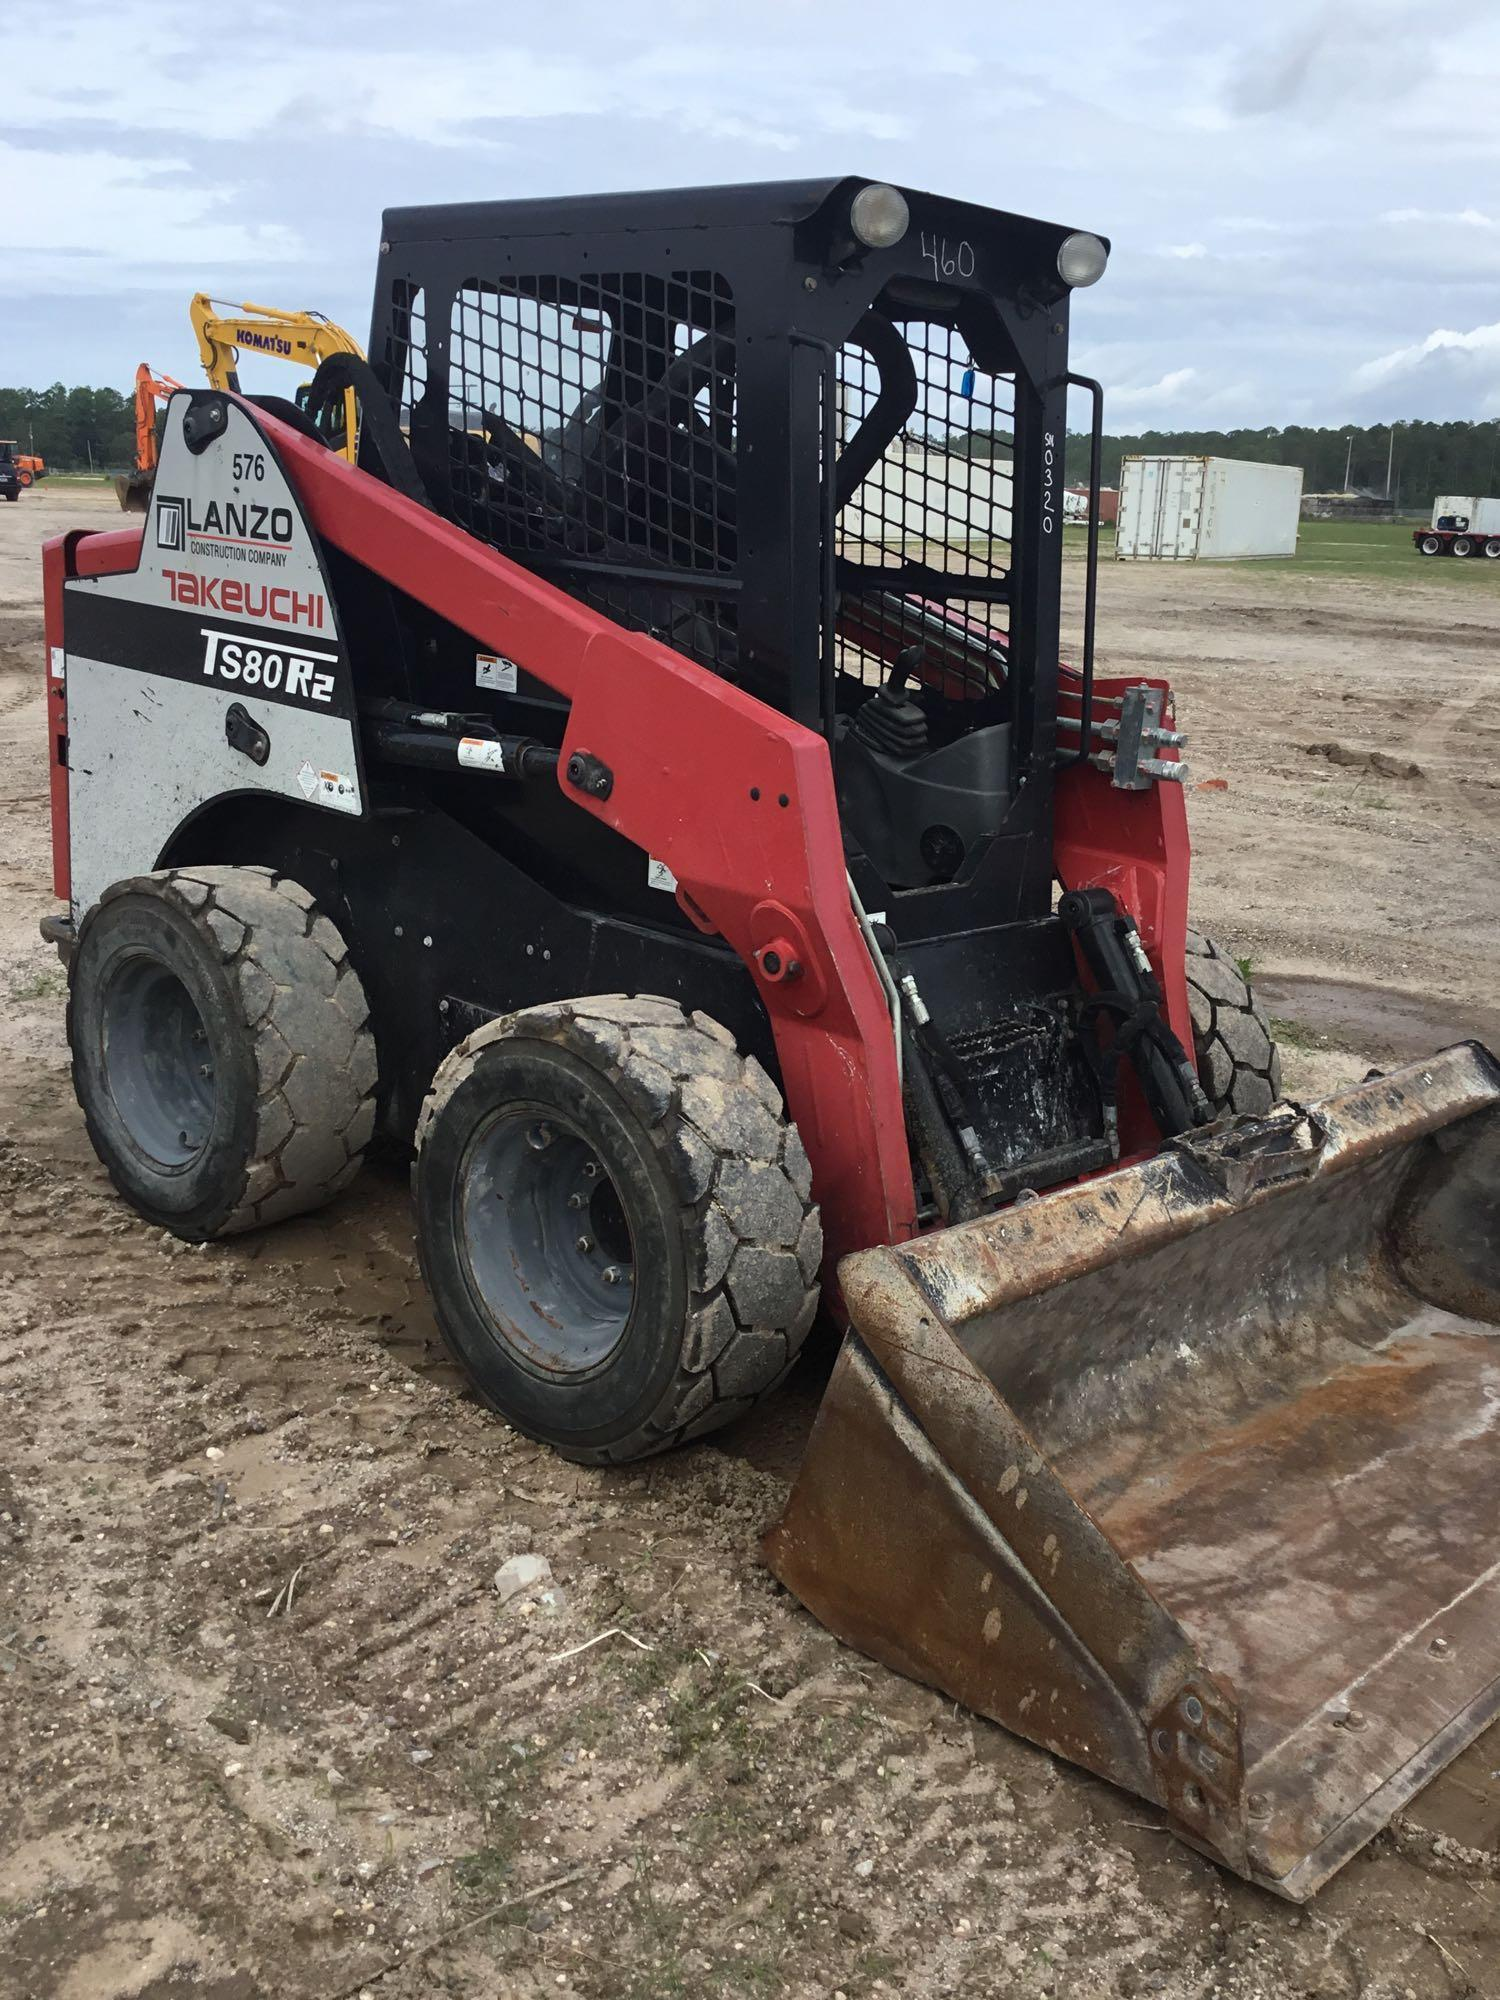 2014 TAKEUCHI TS80R-2 SKID STEER SN:200320 Powered By